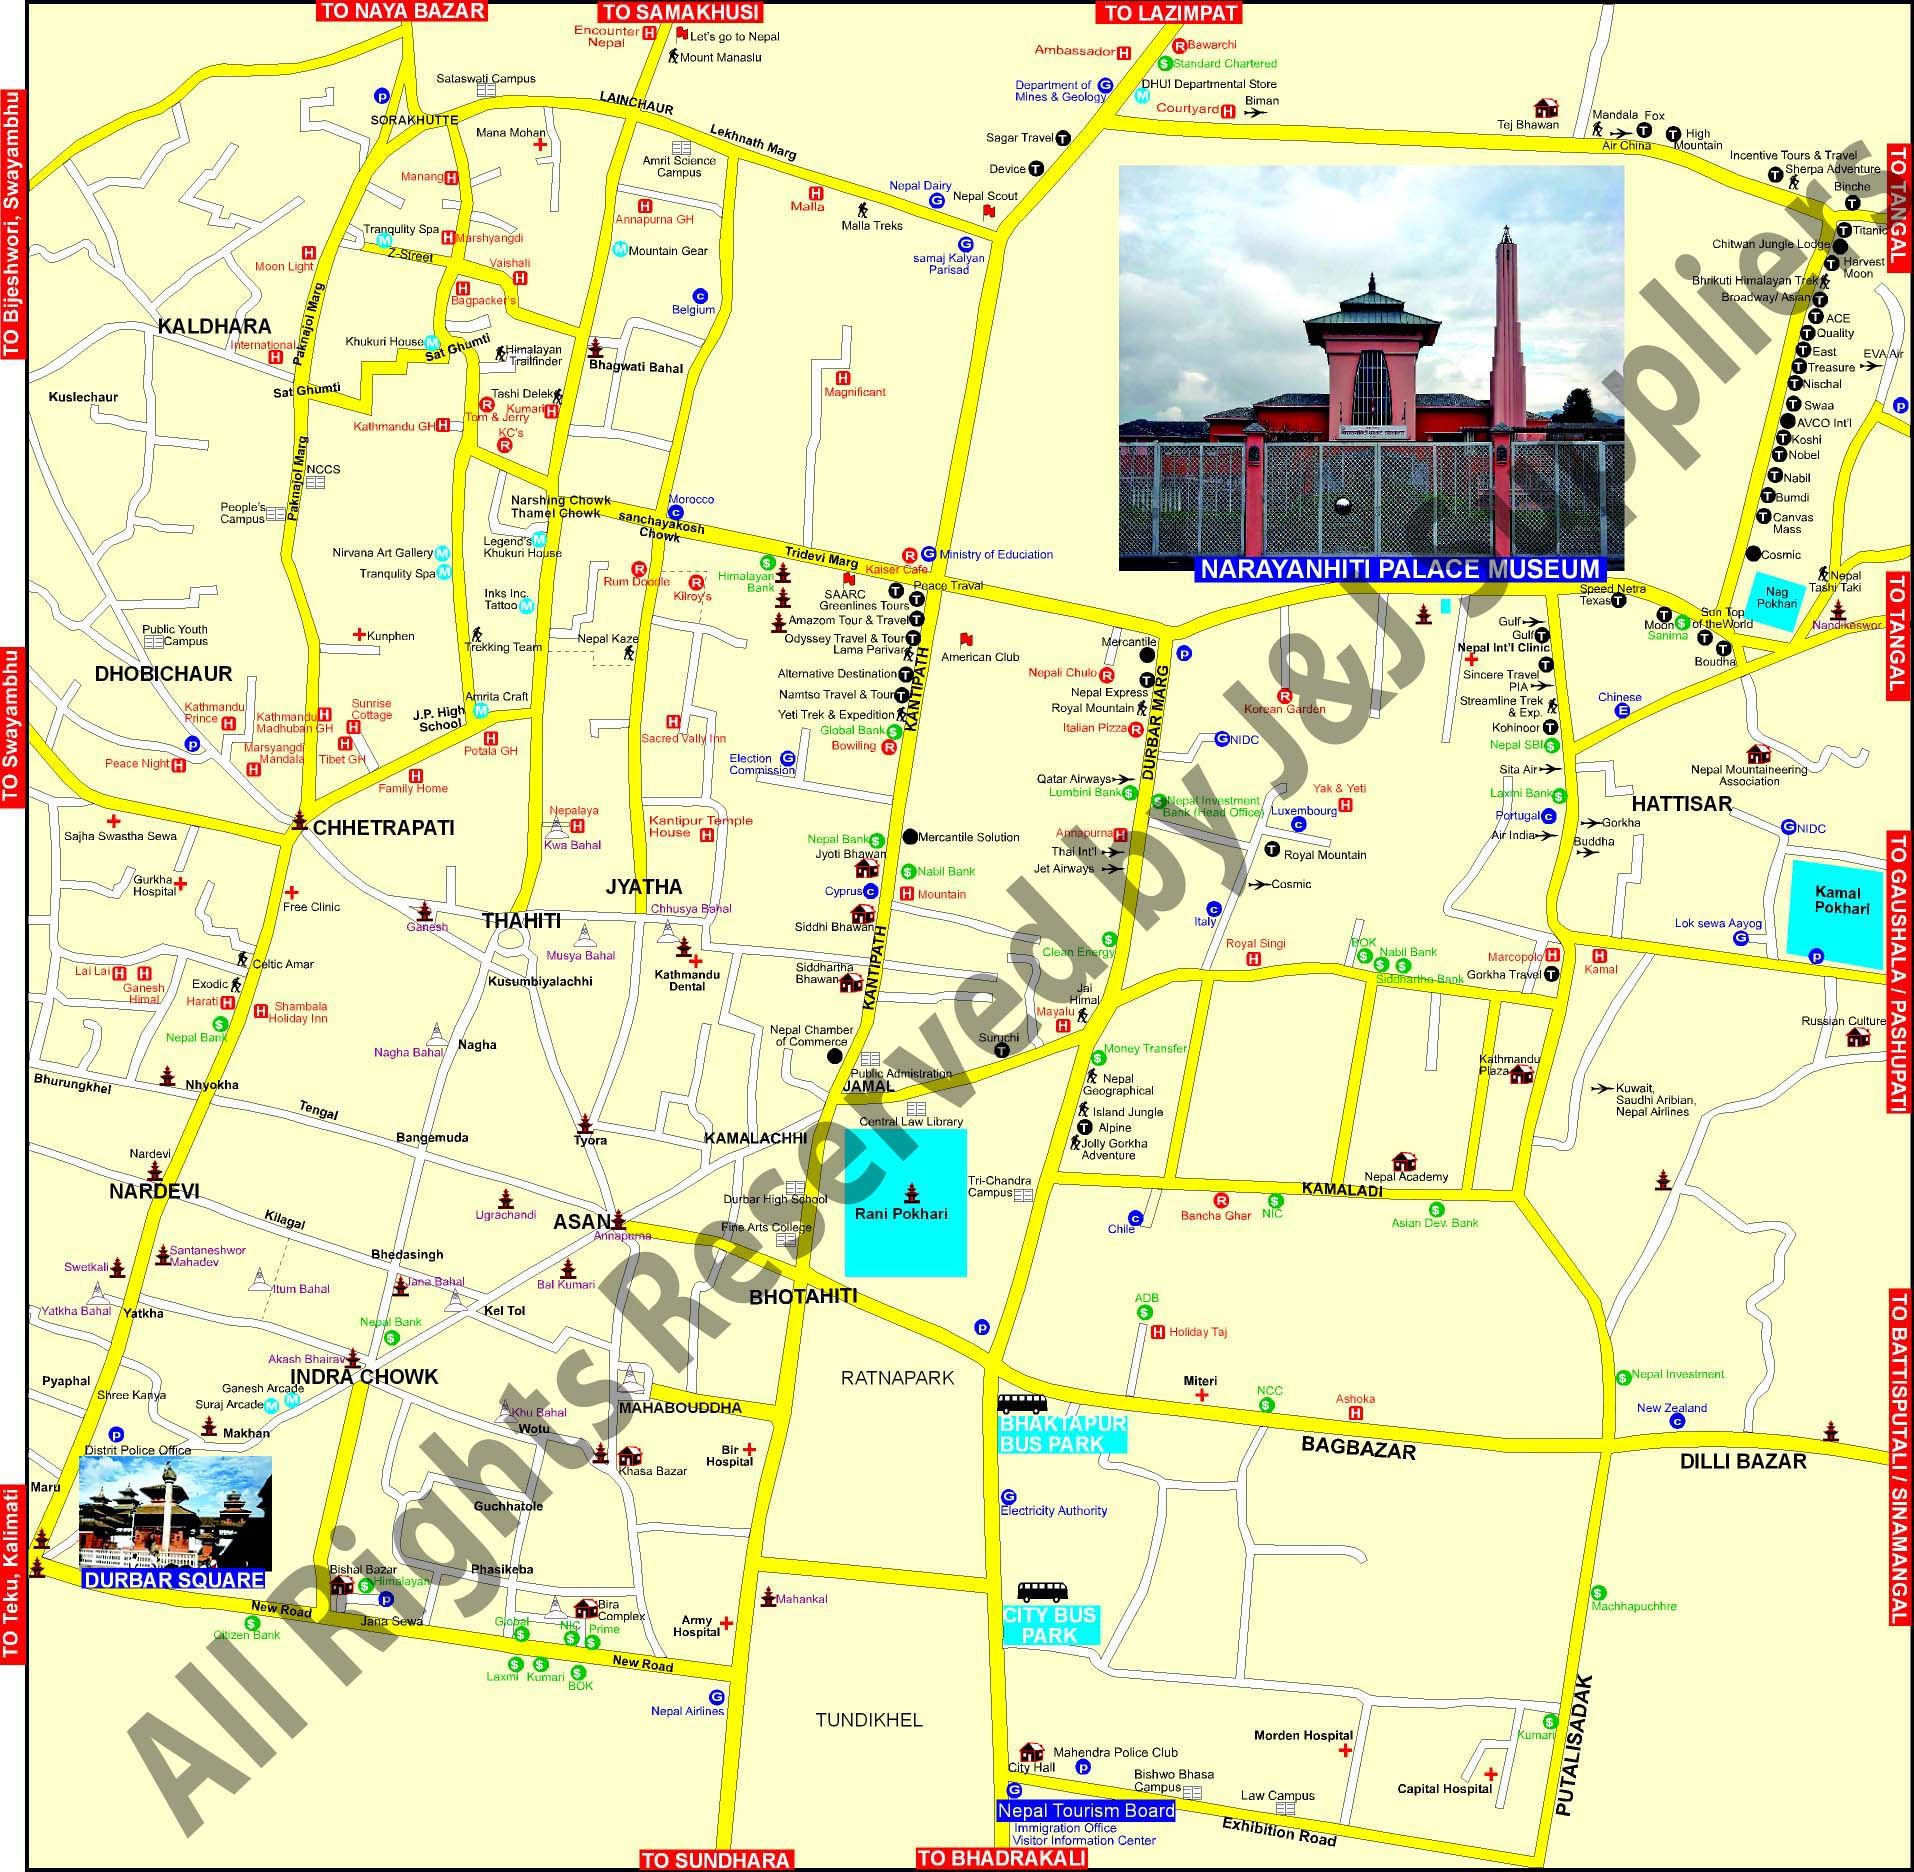 Central Kathmandu Map | Easy Road Map in 2019 | Map, Easy on kuala lumpur, dhaka map, kabul map, mt everest map, colombo map, karachi map, kashmir map, calcutta map, mount everest, islamabad map, tibet map, khyber pass map, lahore map, new delhi, kolkata map, pashupatinath temple, bangladesh map, ulaanbaatar map, rangoon map, nepal map, hong kong map, mumbai map, bhutan map, himalayan mountains map,